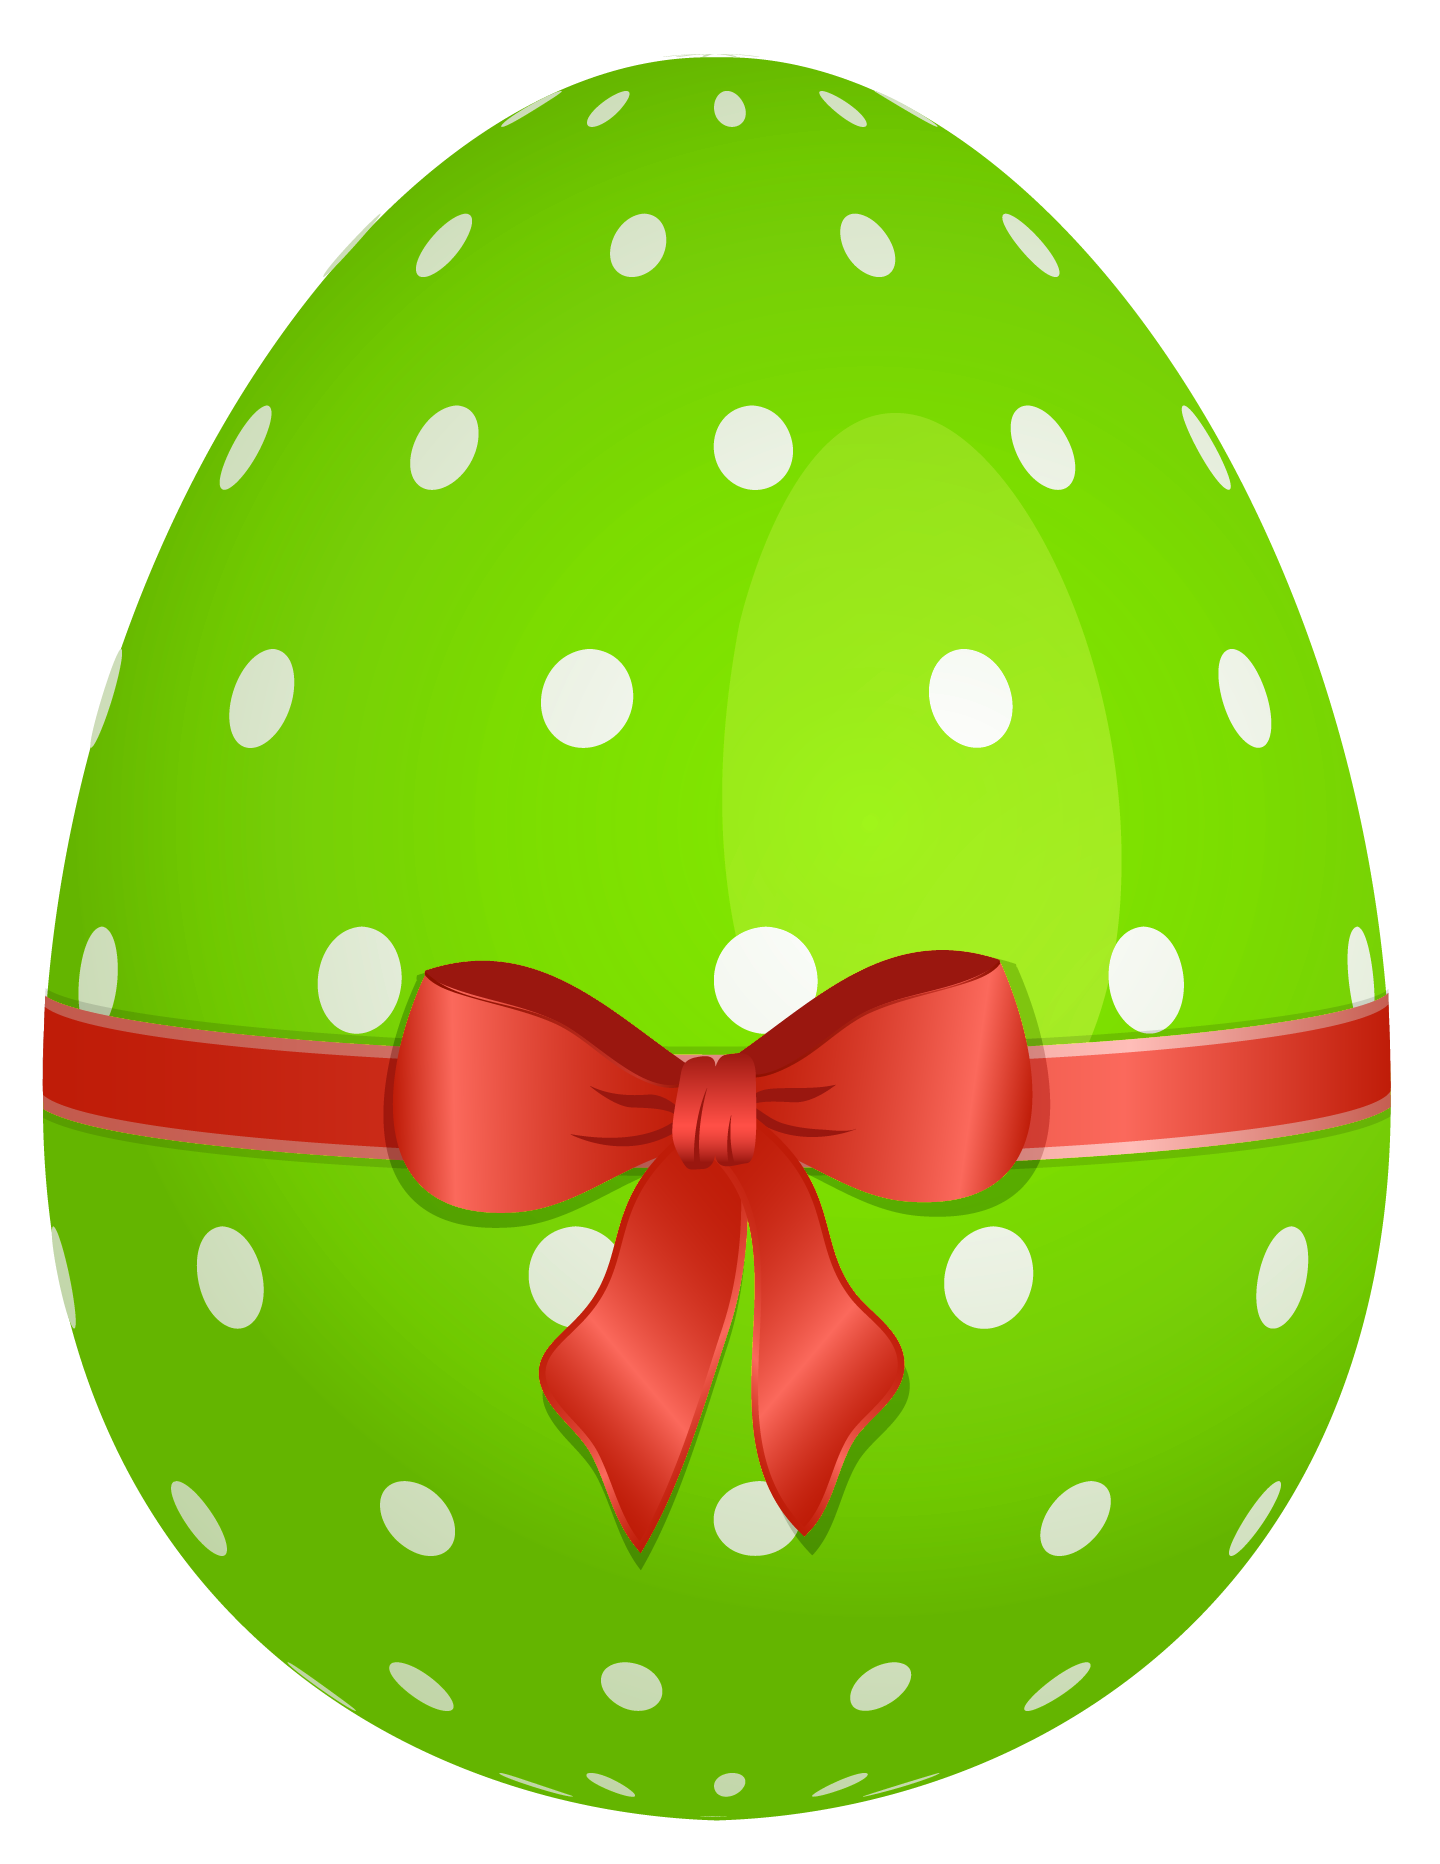 Free download Microsoft Gallery Easter Eggs Clipart for your creation.